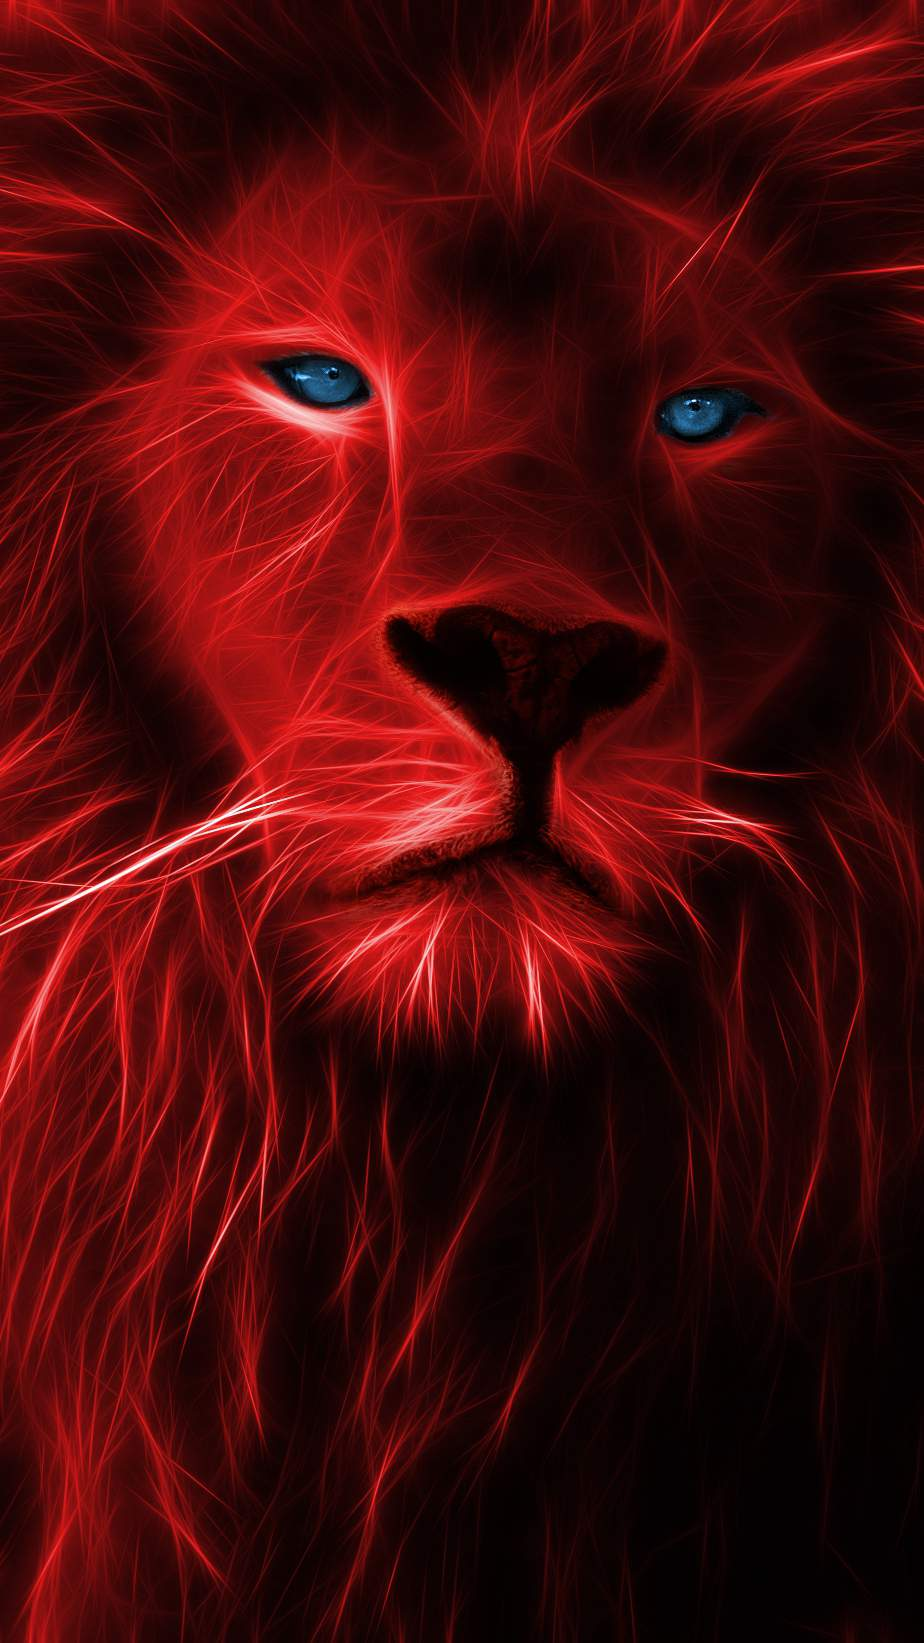 The Lion King Fractalized iPhone Wallpaper